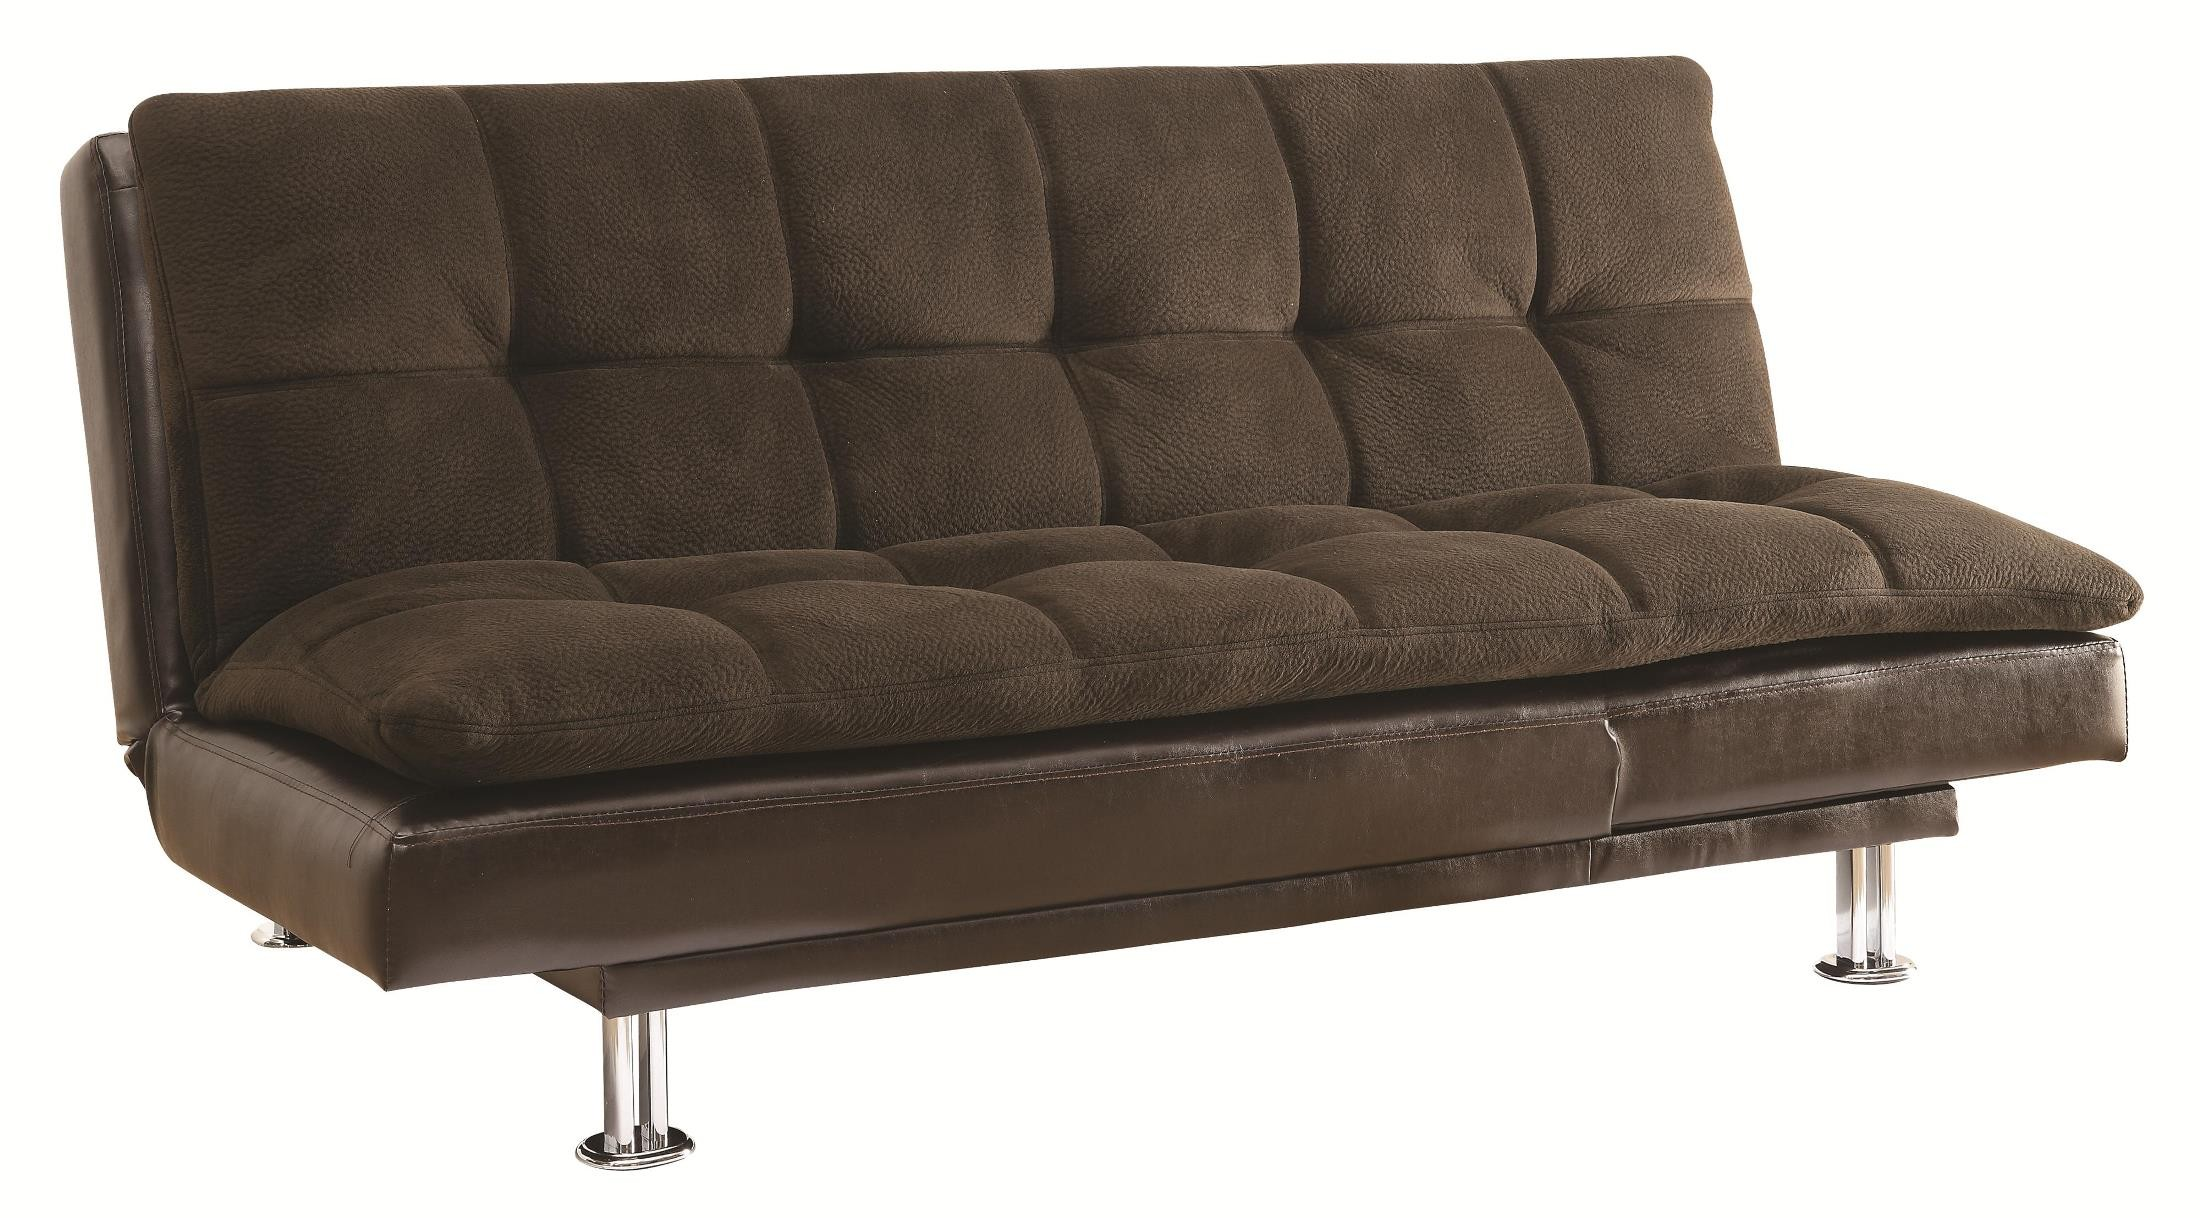 300313 futon sofa bed from coaster 300313 coleman furniture